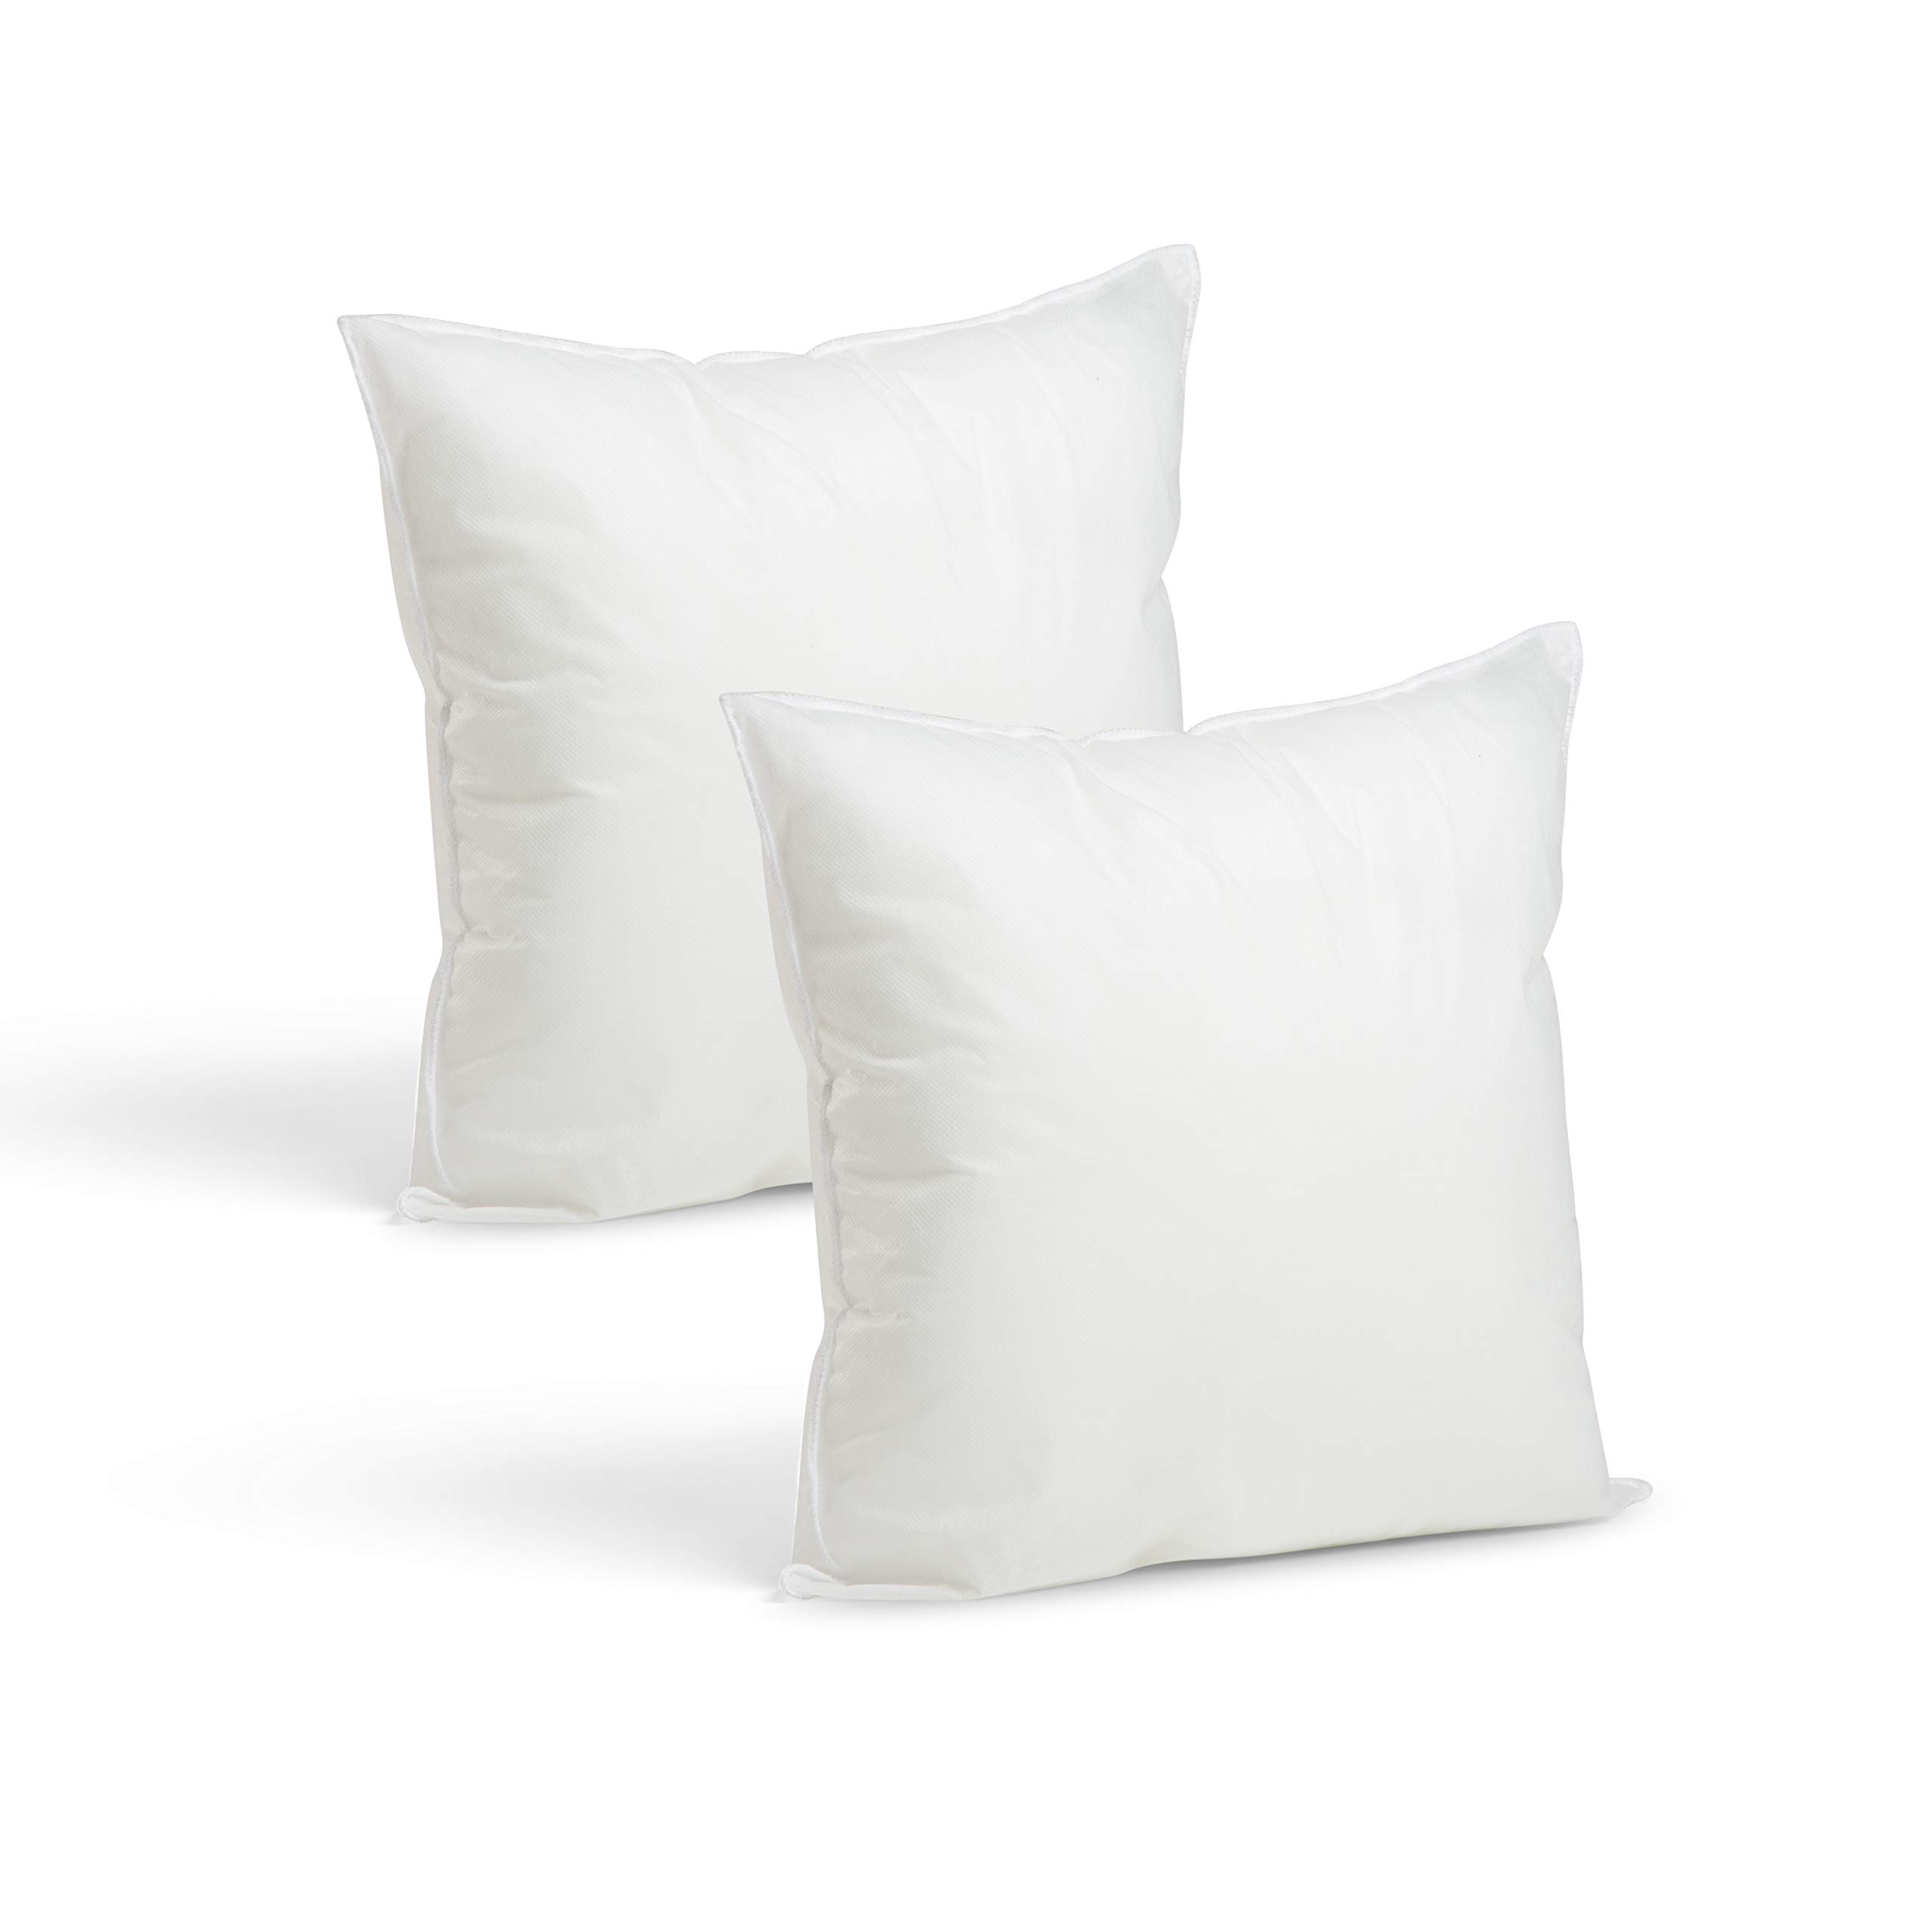 Set of 2-12 x 12 Premium Hypoallergenic Stuffer Pillow Inserts Sham Square Form Polyester, Standard/White – Made in USA